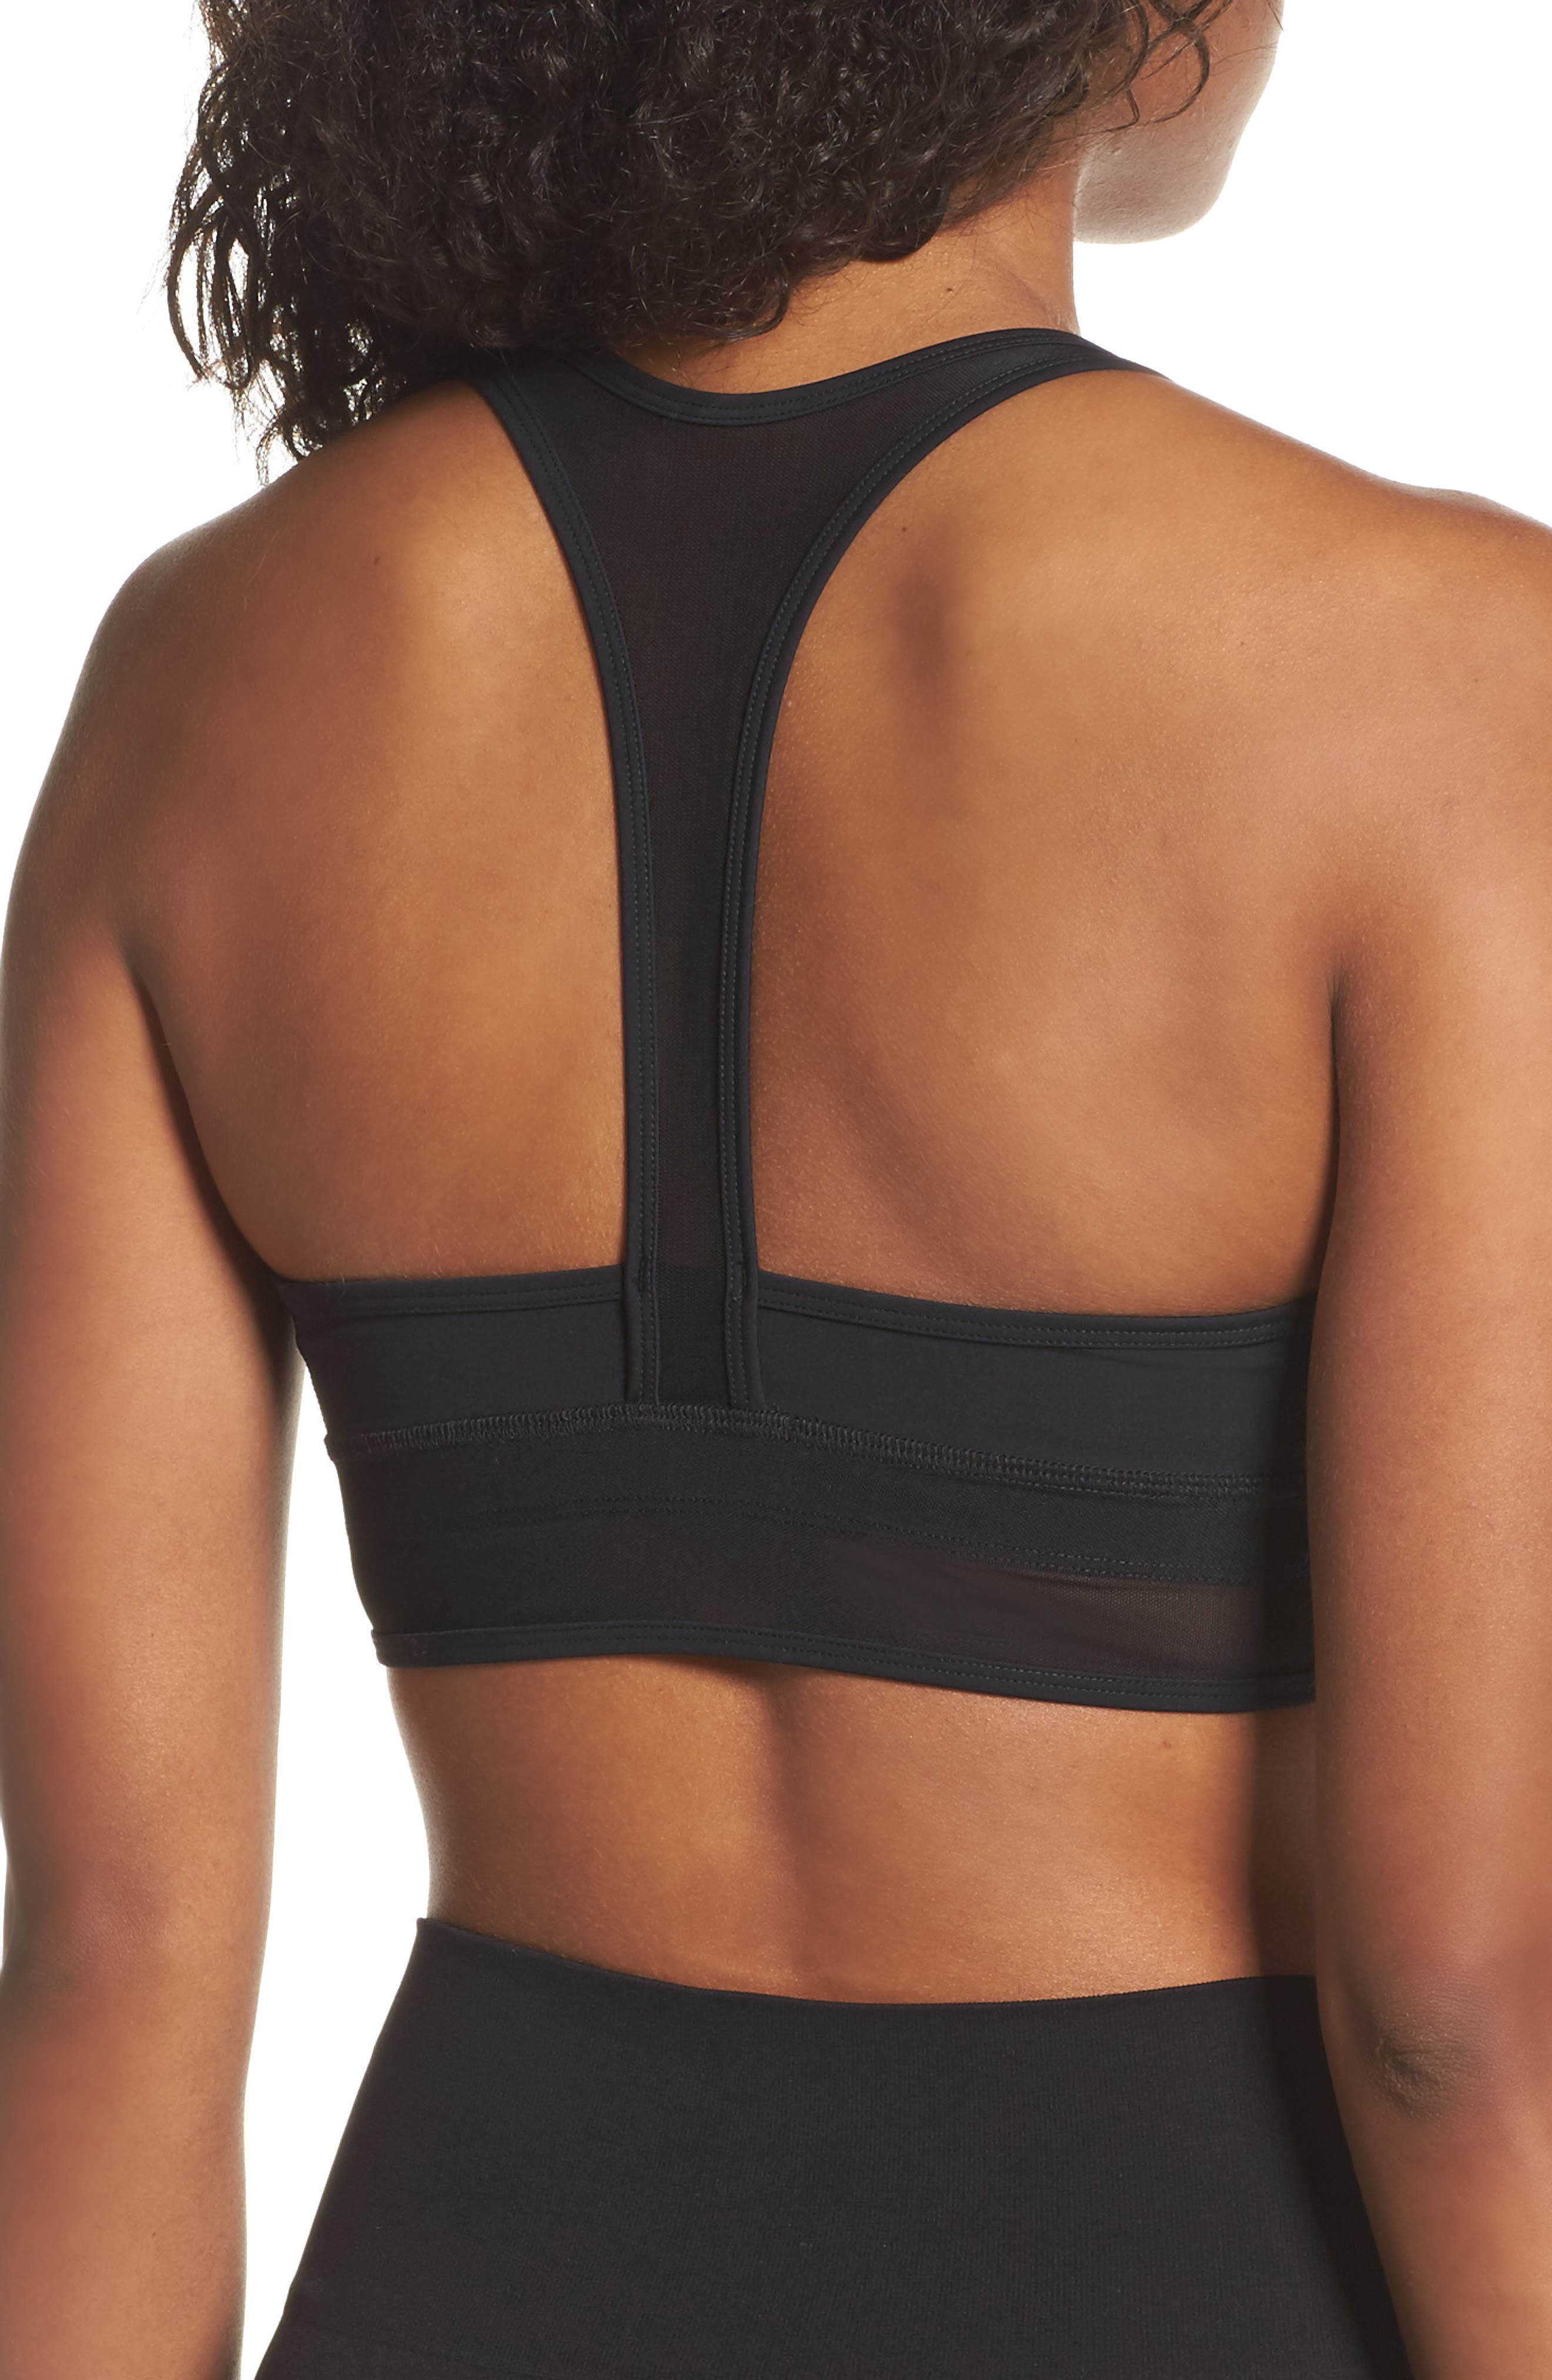 BoomBoom Athletic Plunge Racerback Sports Bra,                             Alternate thumbnail 2, color,                             Black